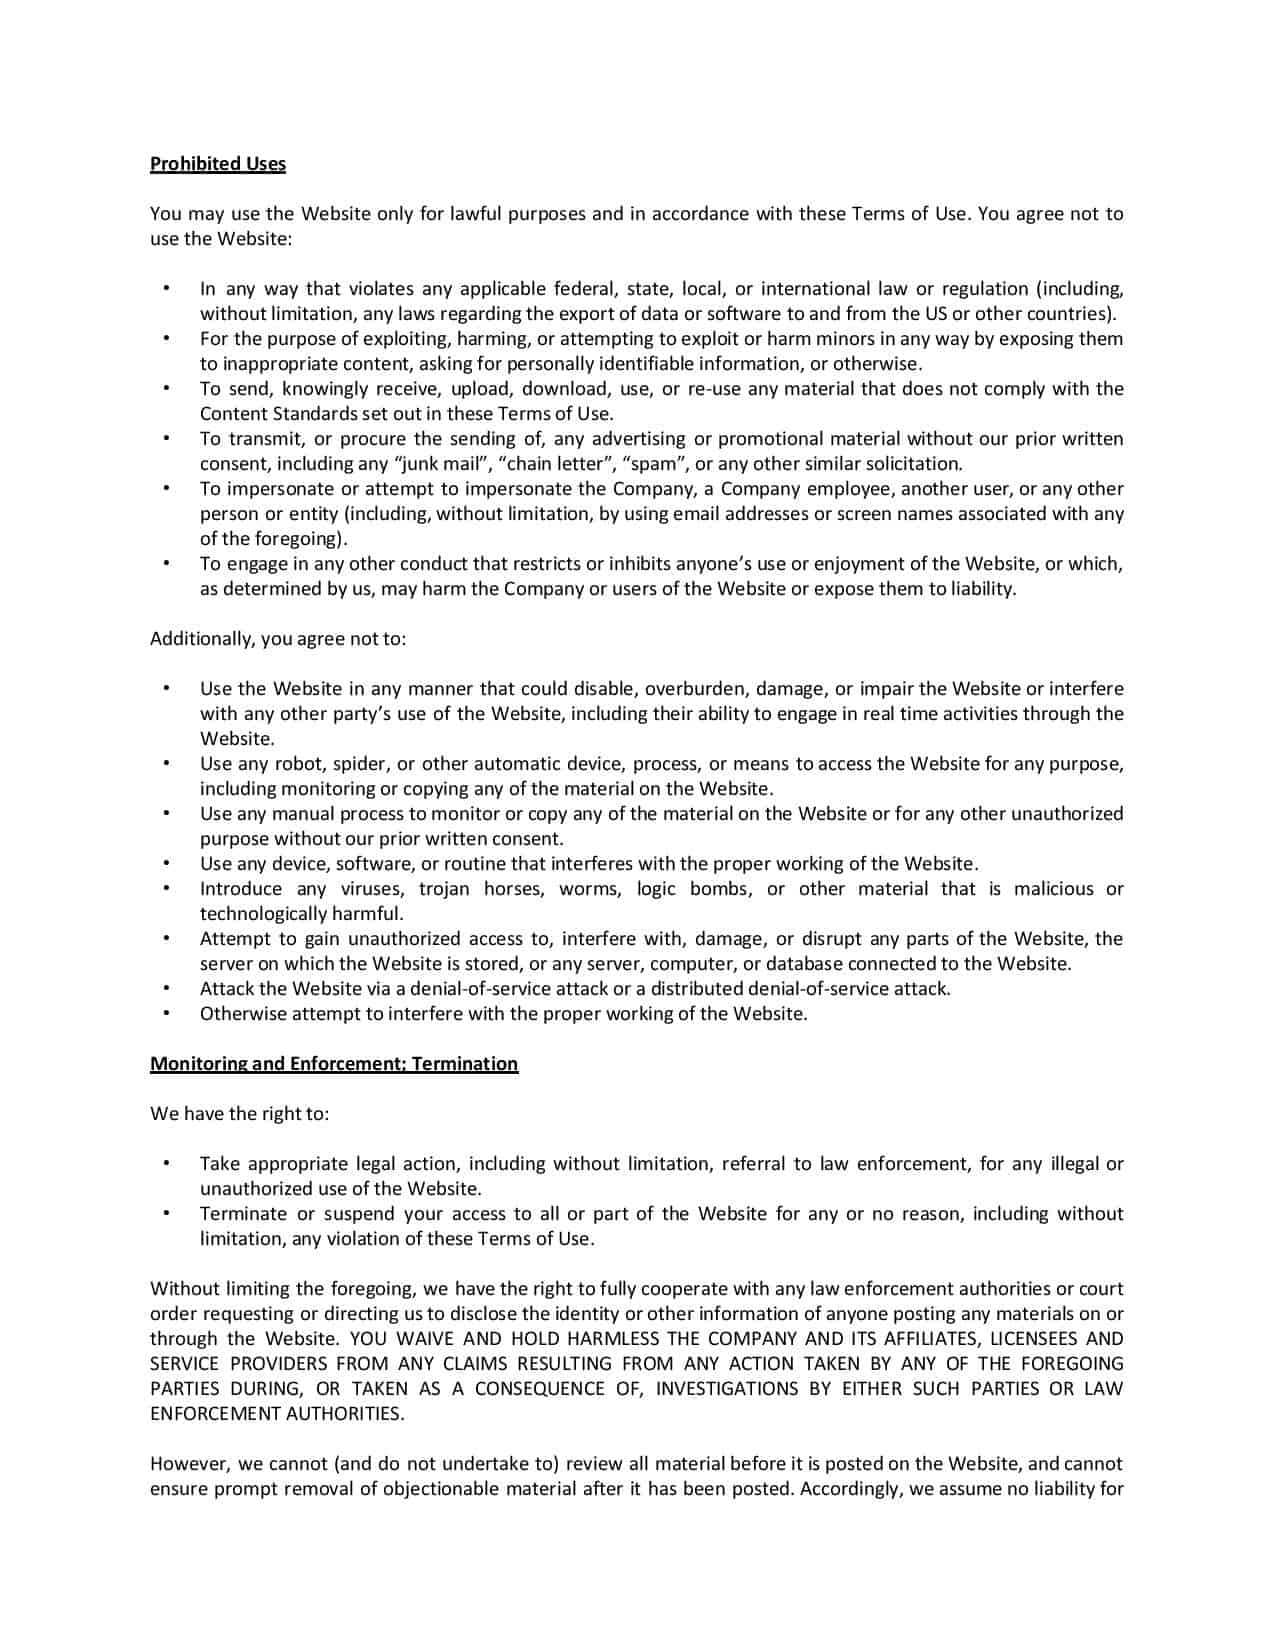 overbrookrehabilitationcenter Terms of Use-page-003